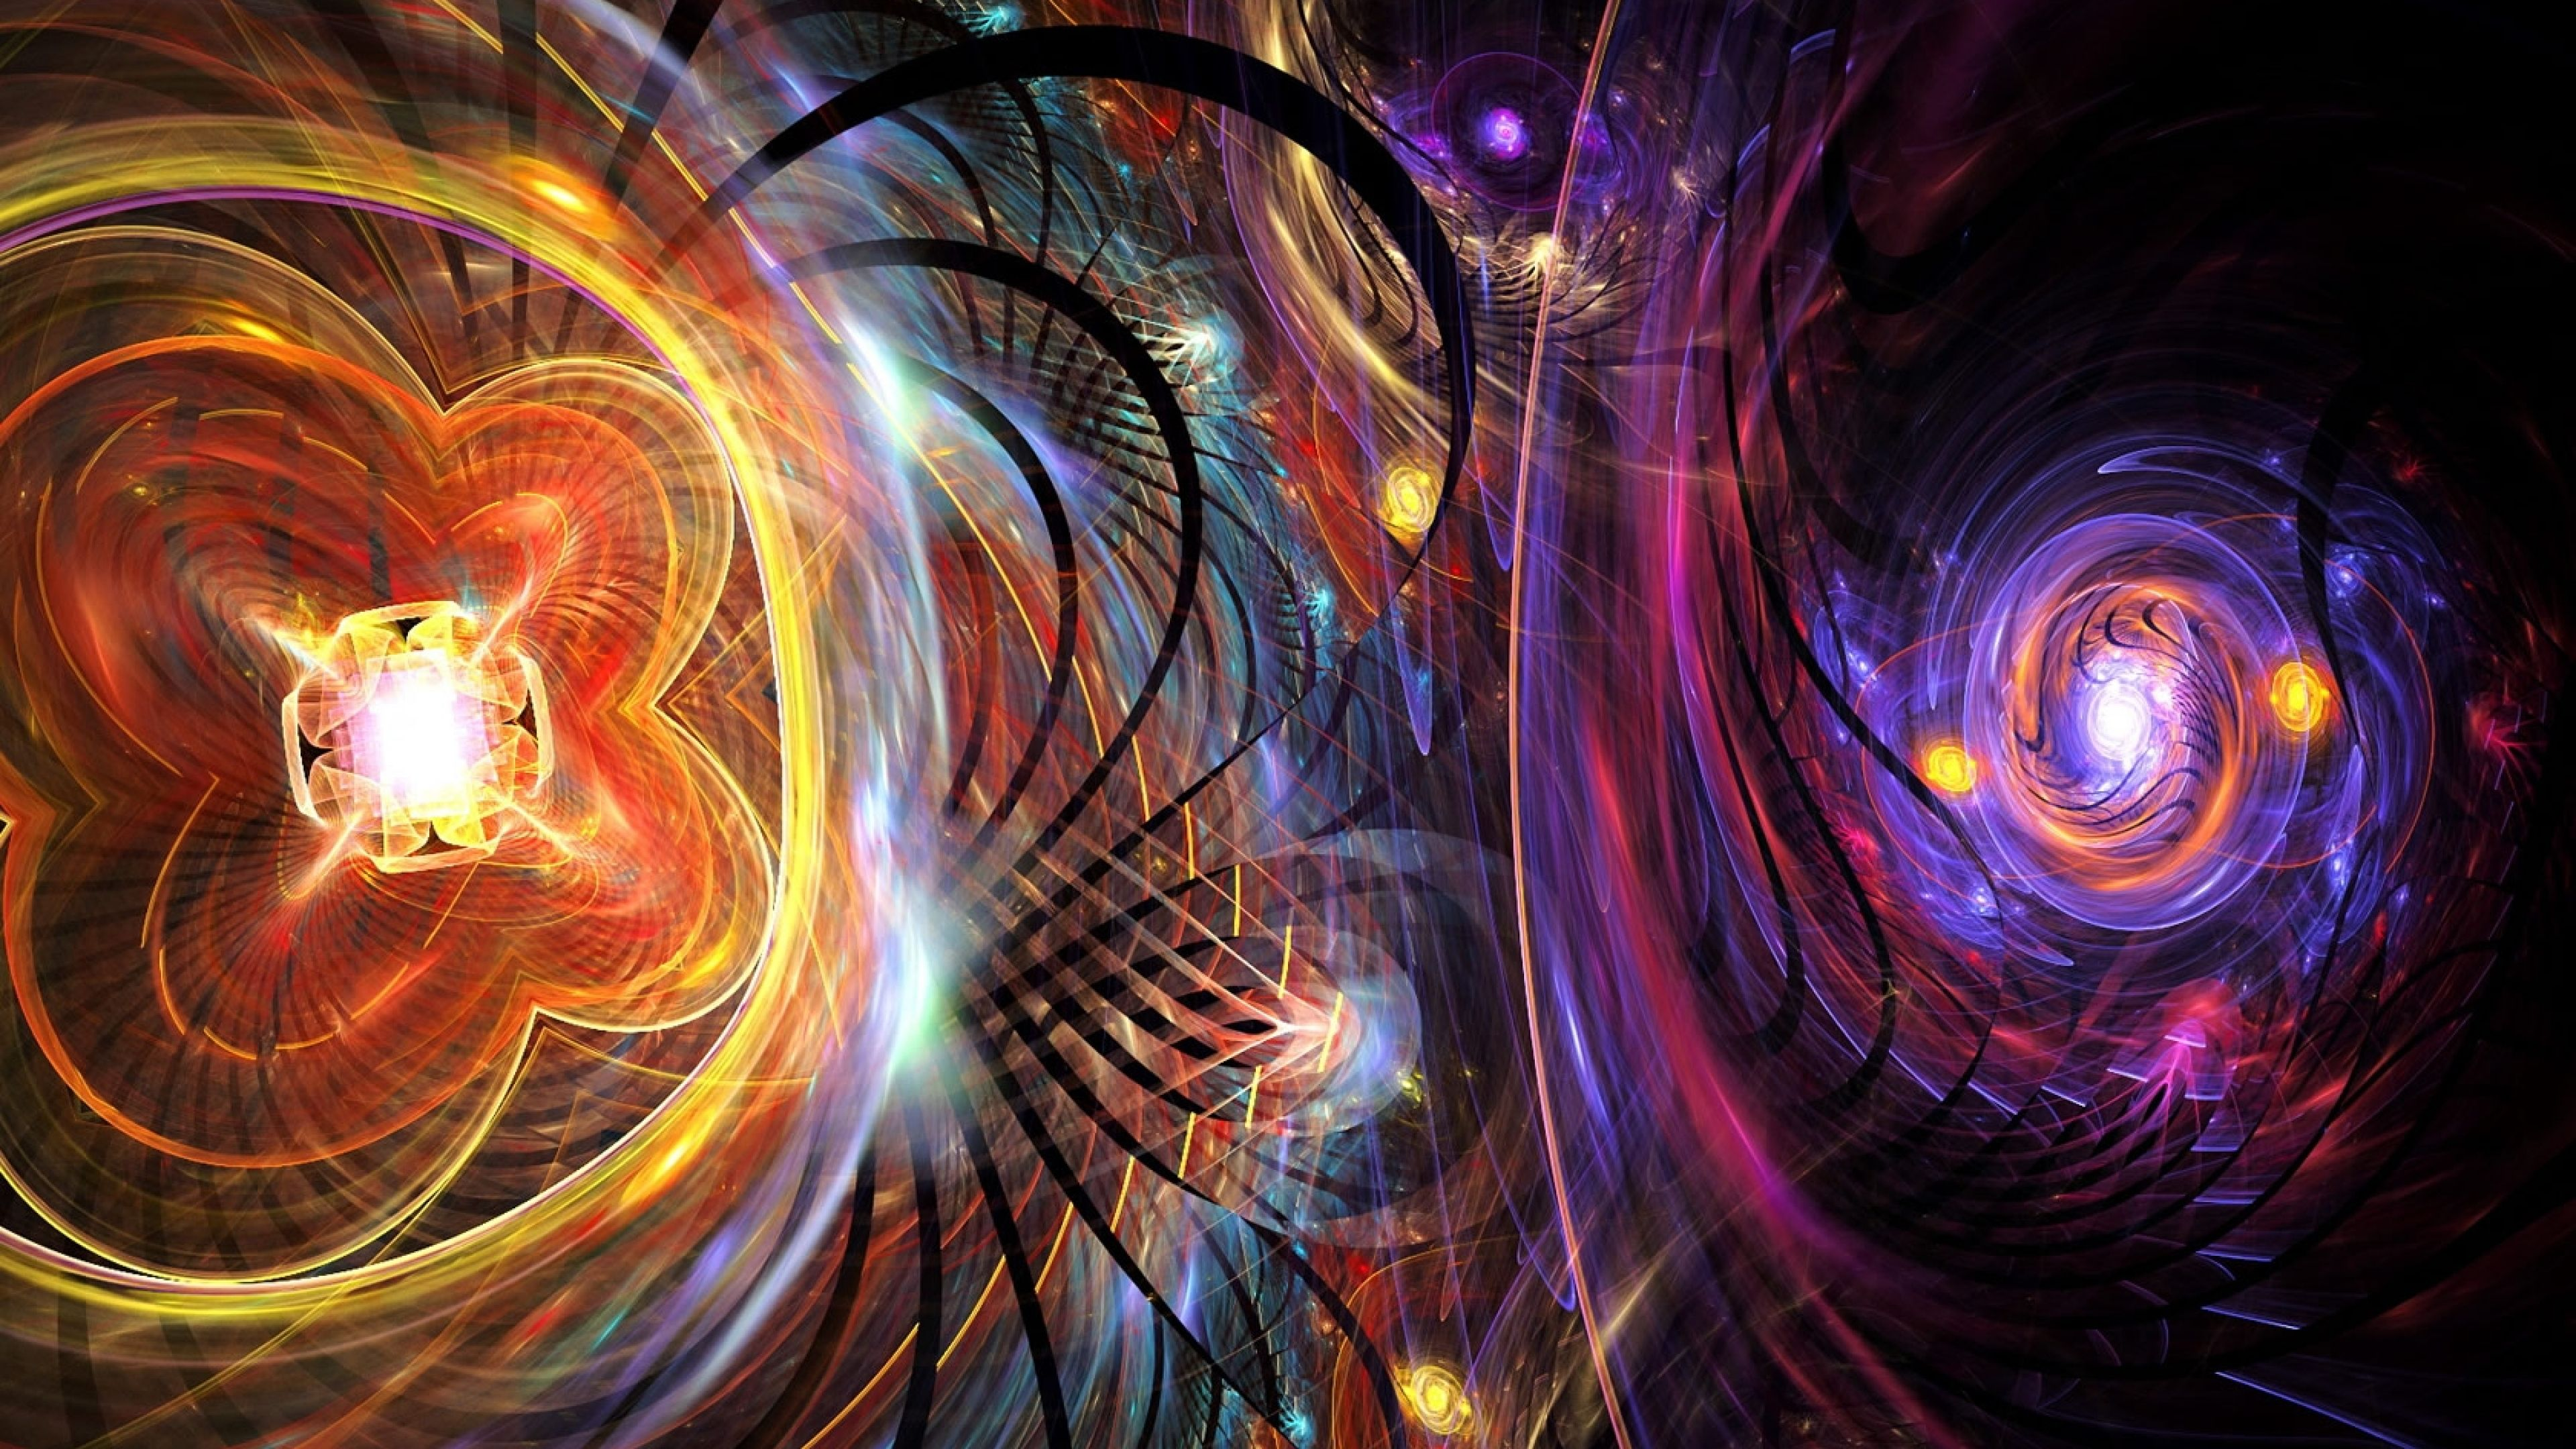 Must see Wallpaper High Resolution Trippy - 977e1f4a3dce34f0c2be8f7f299b1296  Perfect Image Reference_512359.jpg